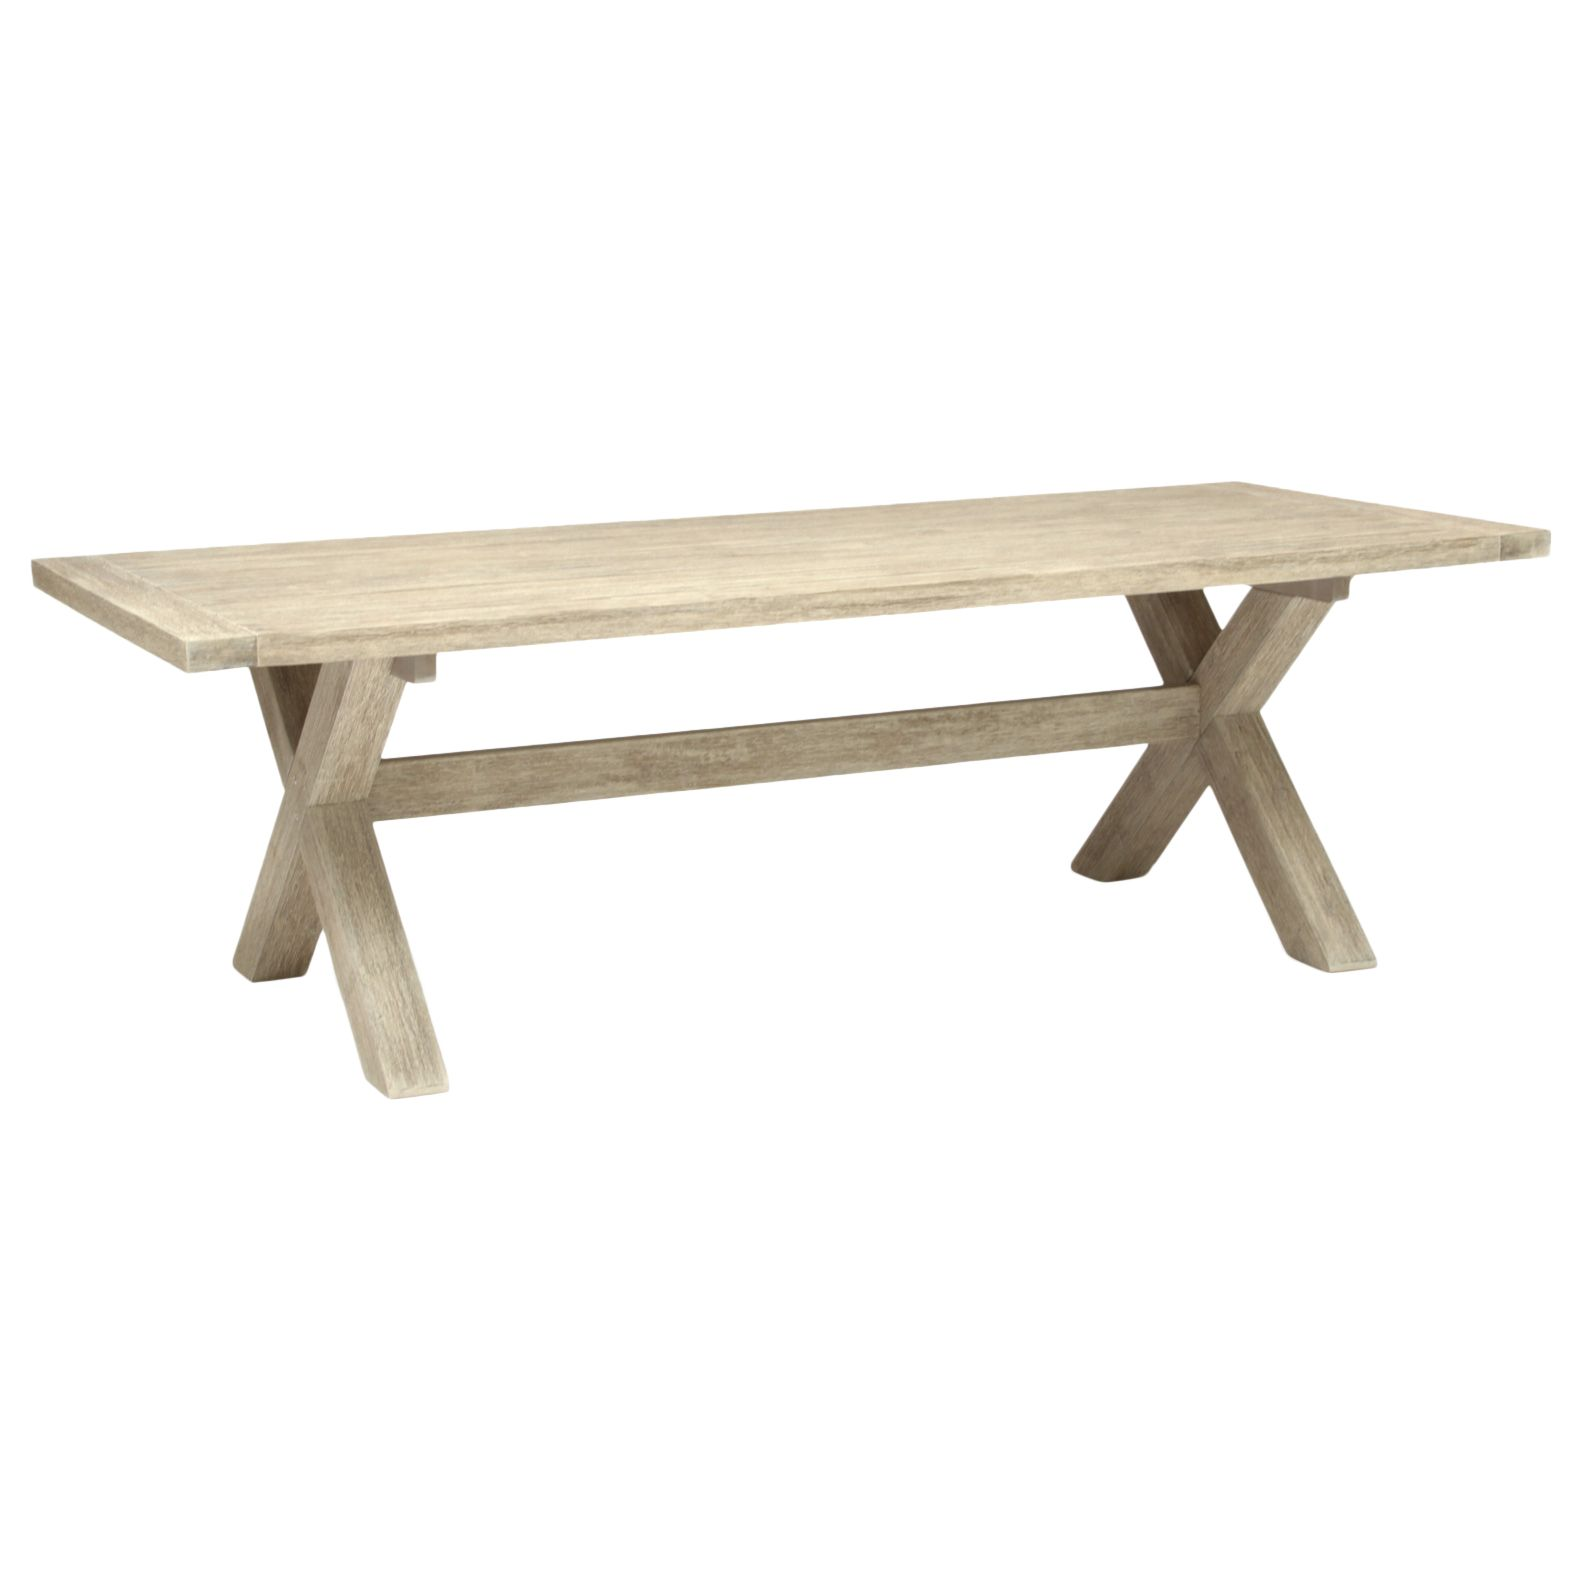 Kettler KETTLER Cora 8 Seater Rectangle Garden Table, FSC-Certified (Acacia), Whitewash